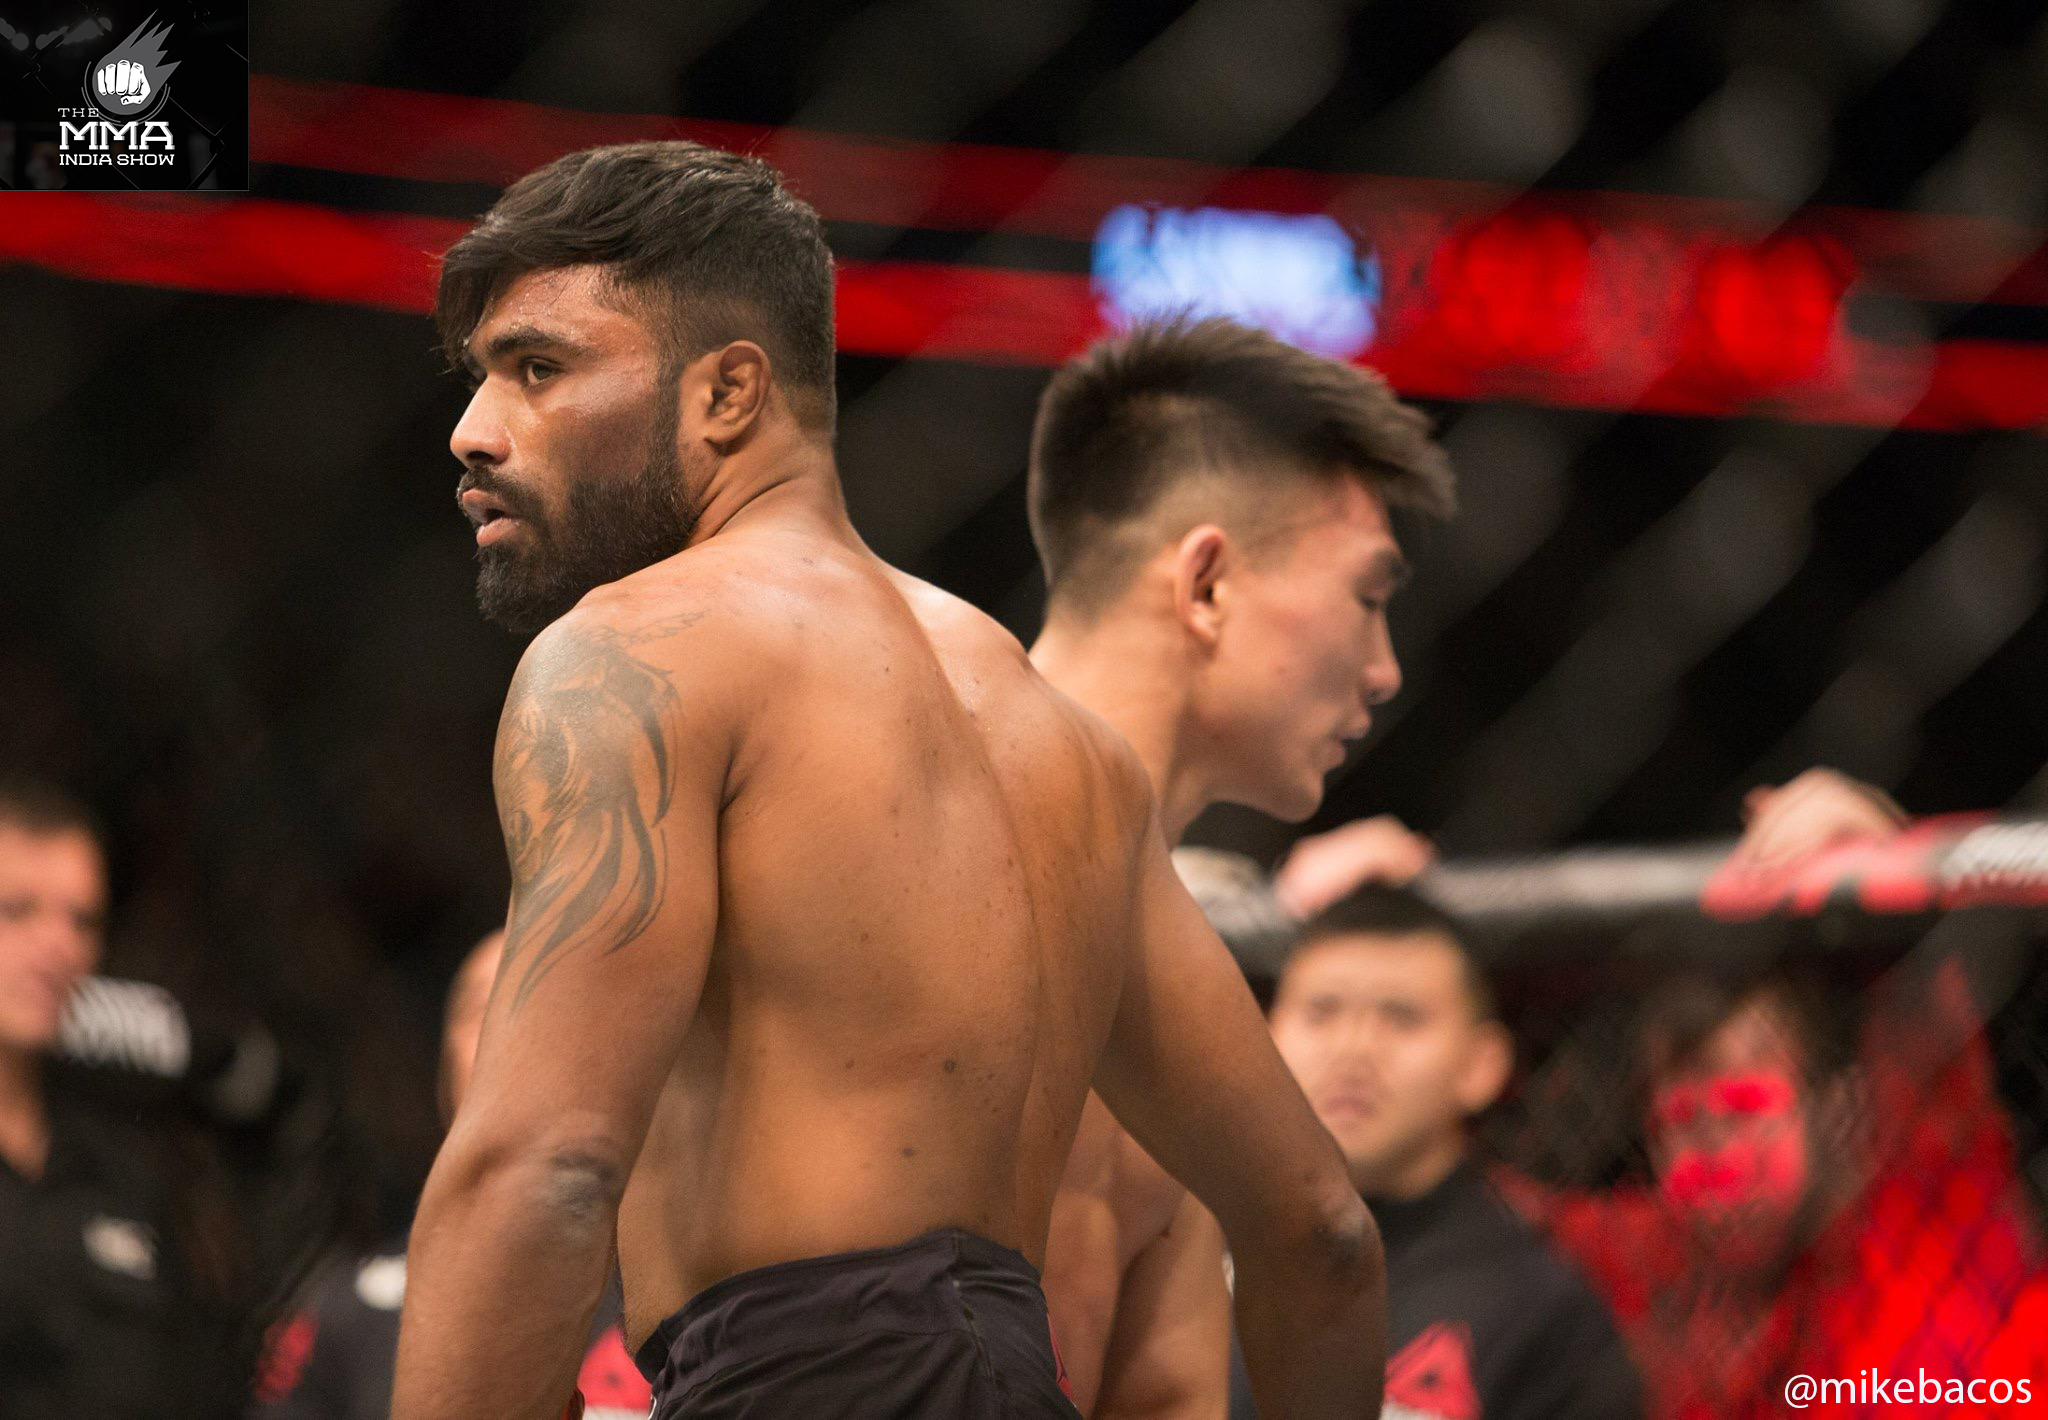 MMA India Exclusive: Bharat Kandare's team opens up about the USADA suspension - Bharat